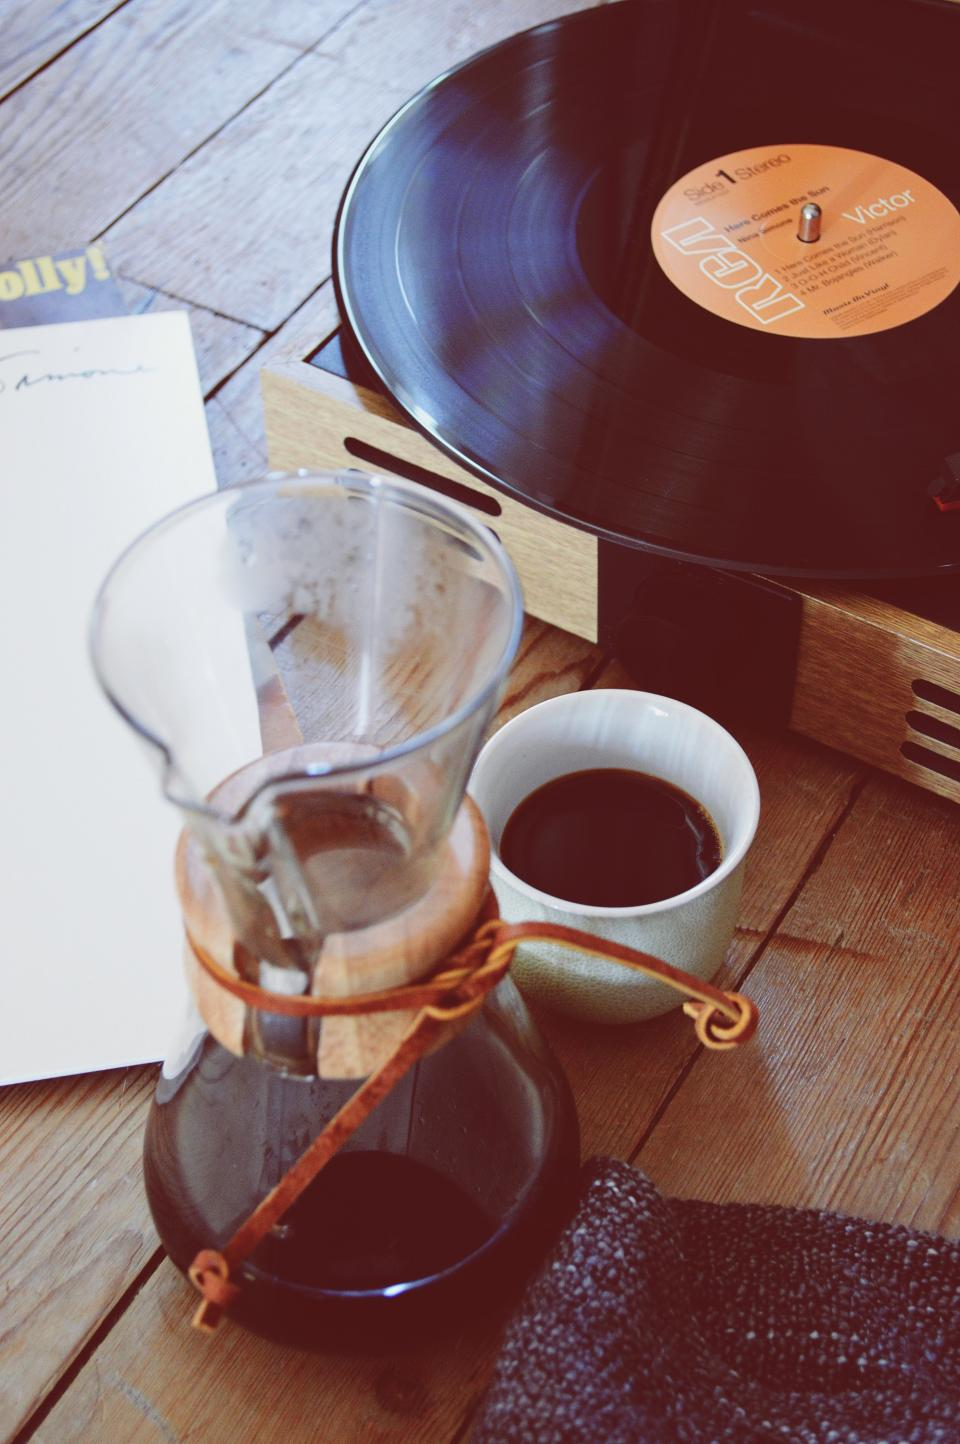 coffee, cup, mug, record, album, lp, music, vinyl, objects